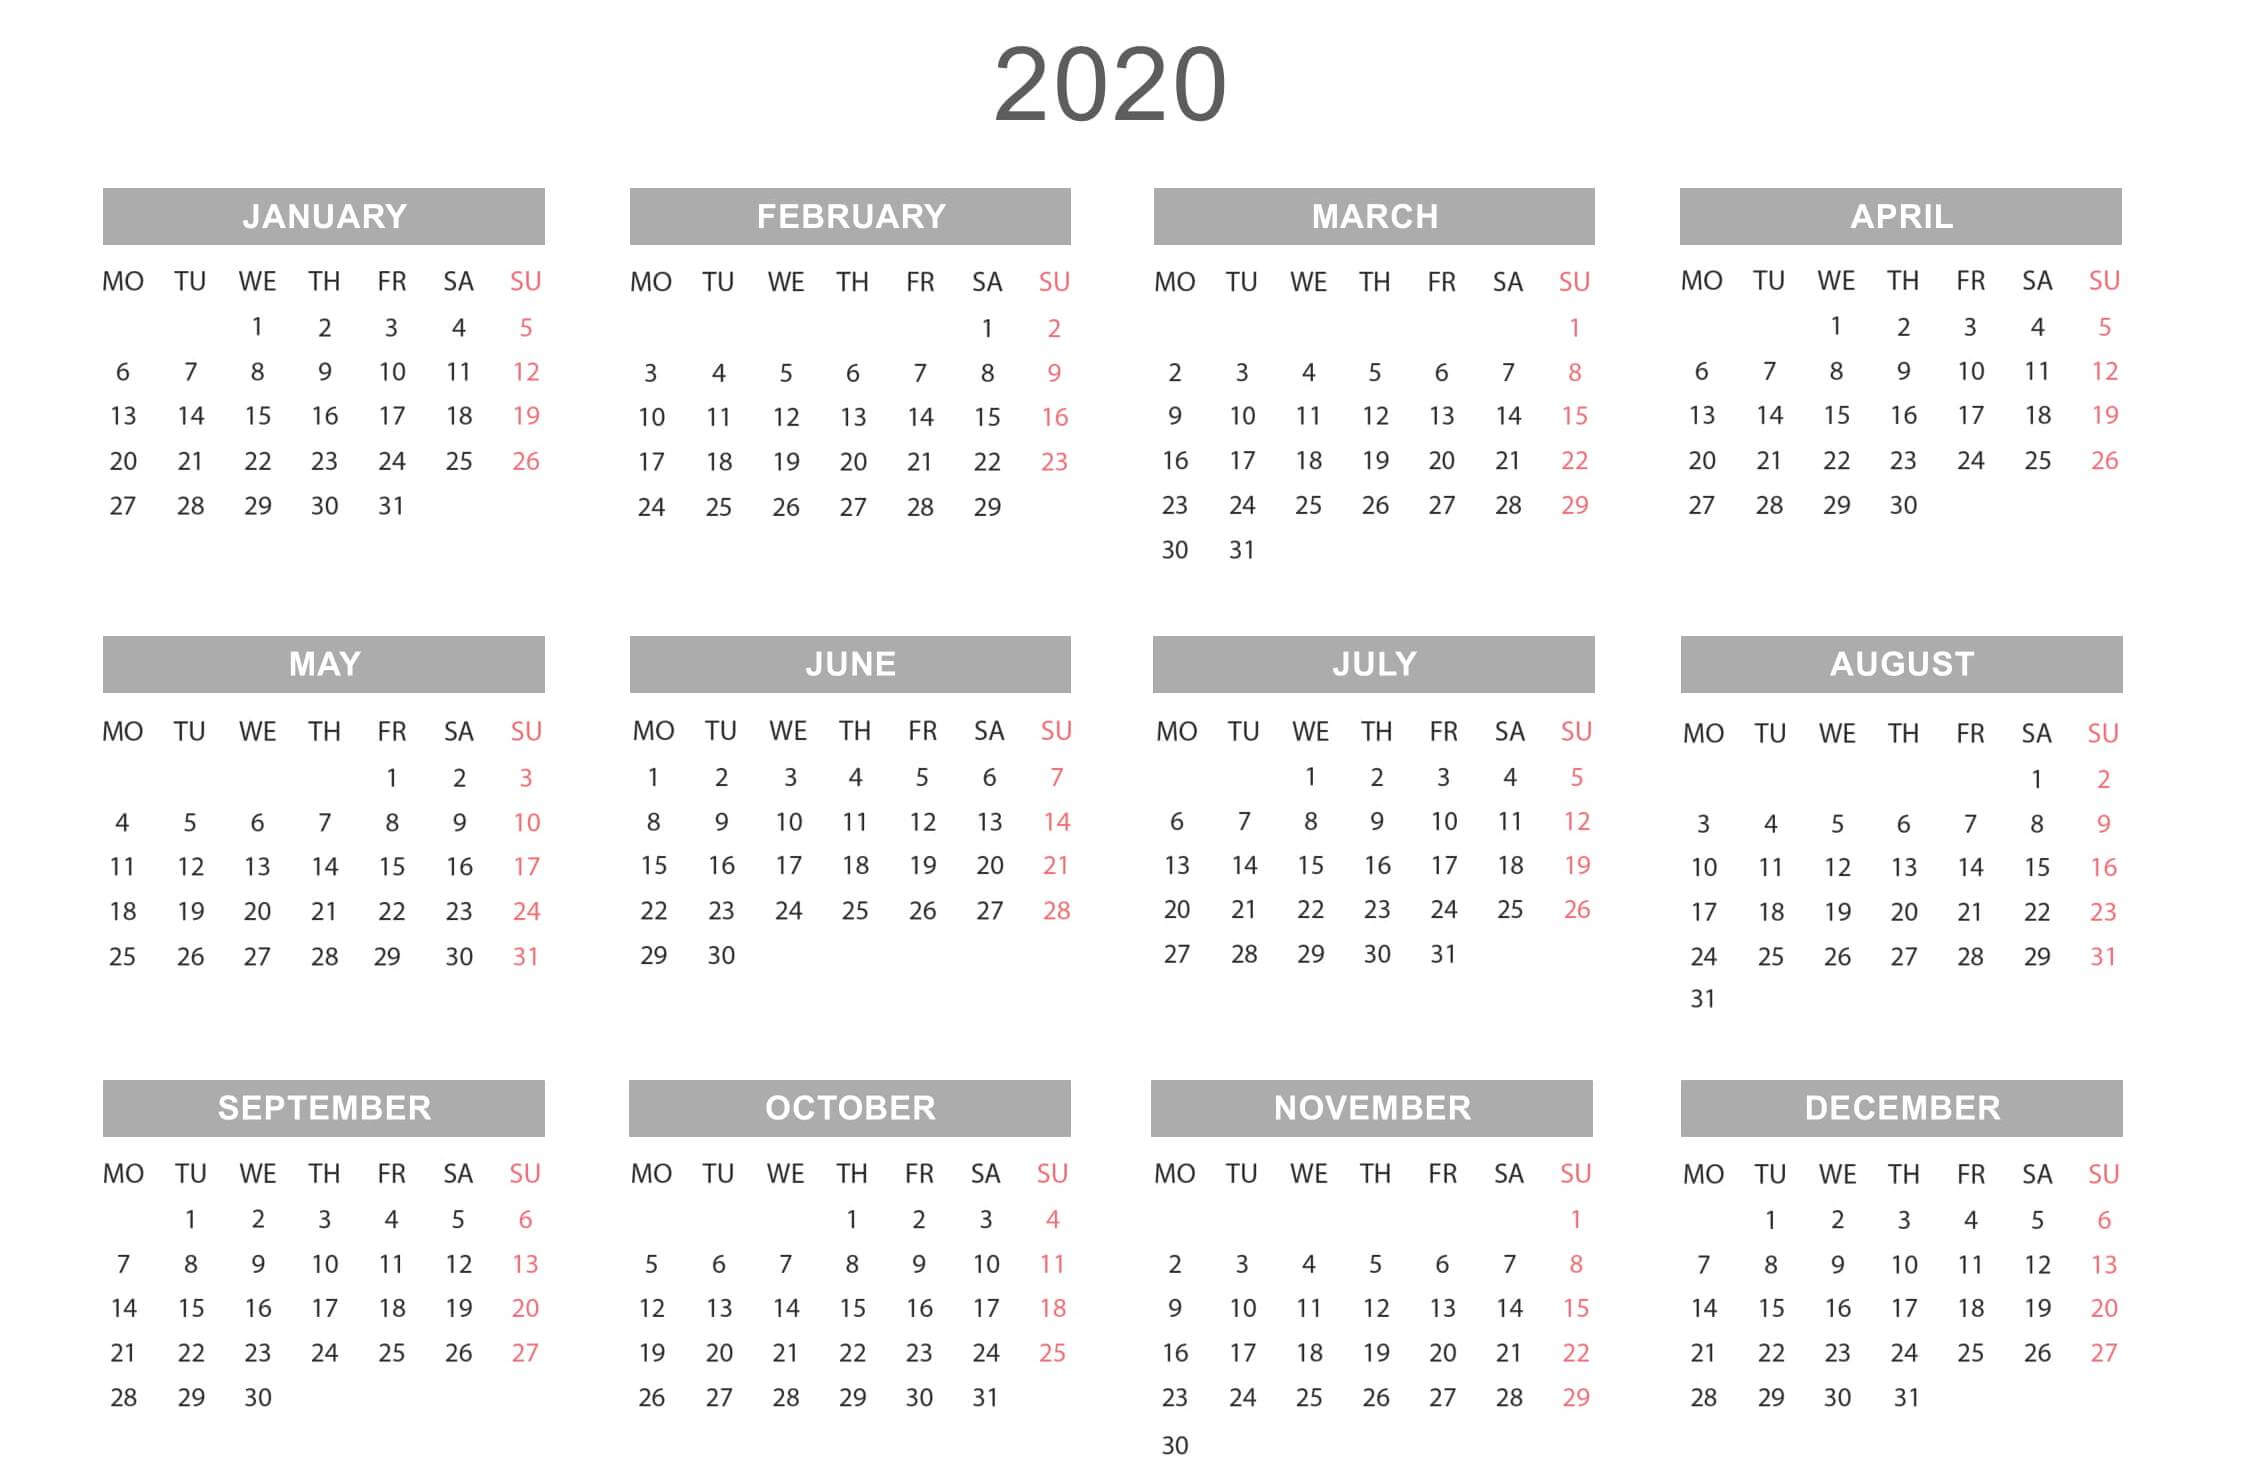 Free Yearly Calendar 2020 Template Online - Set Your Plan